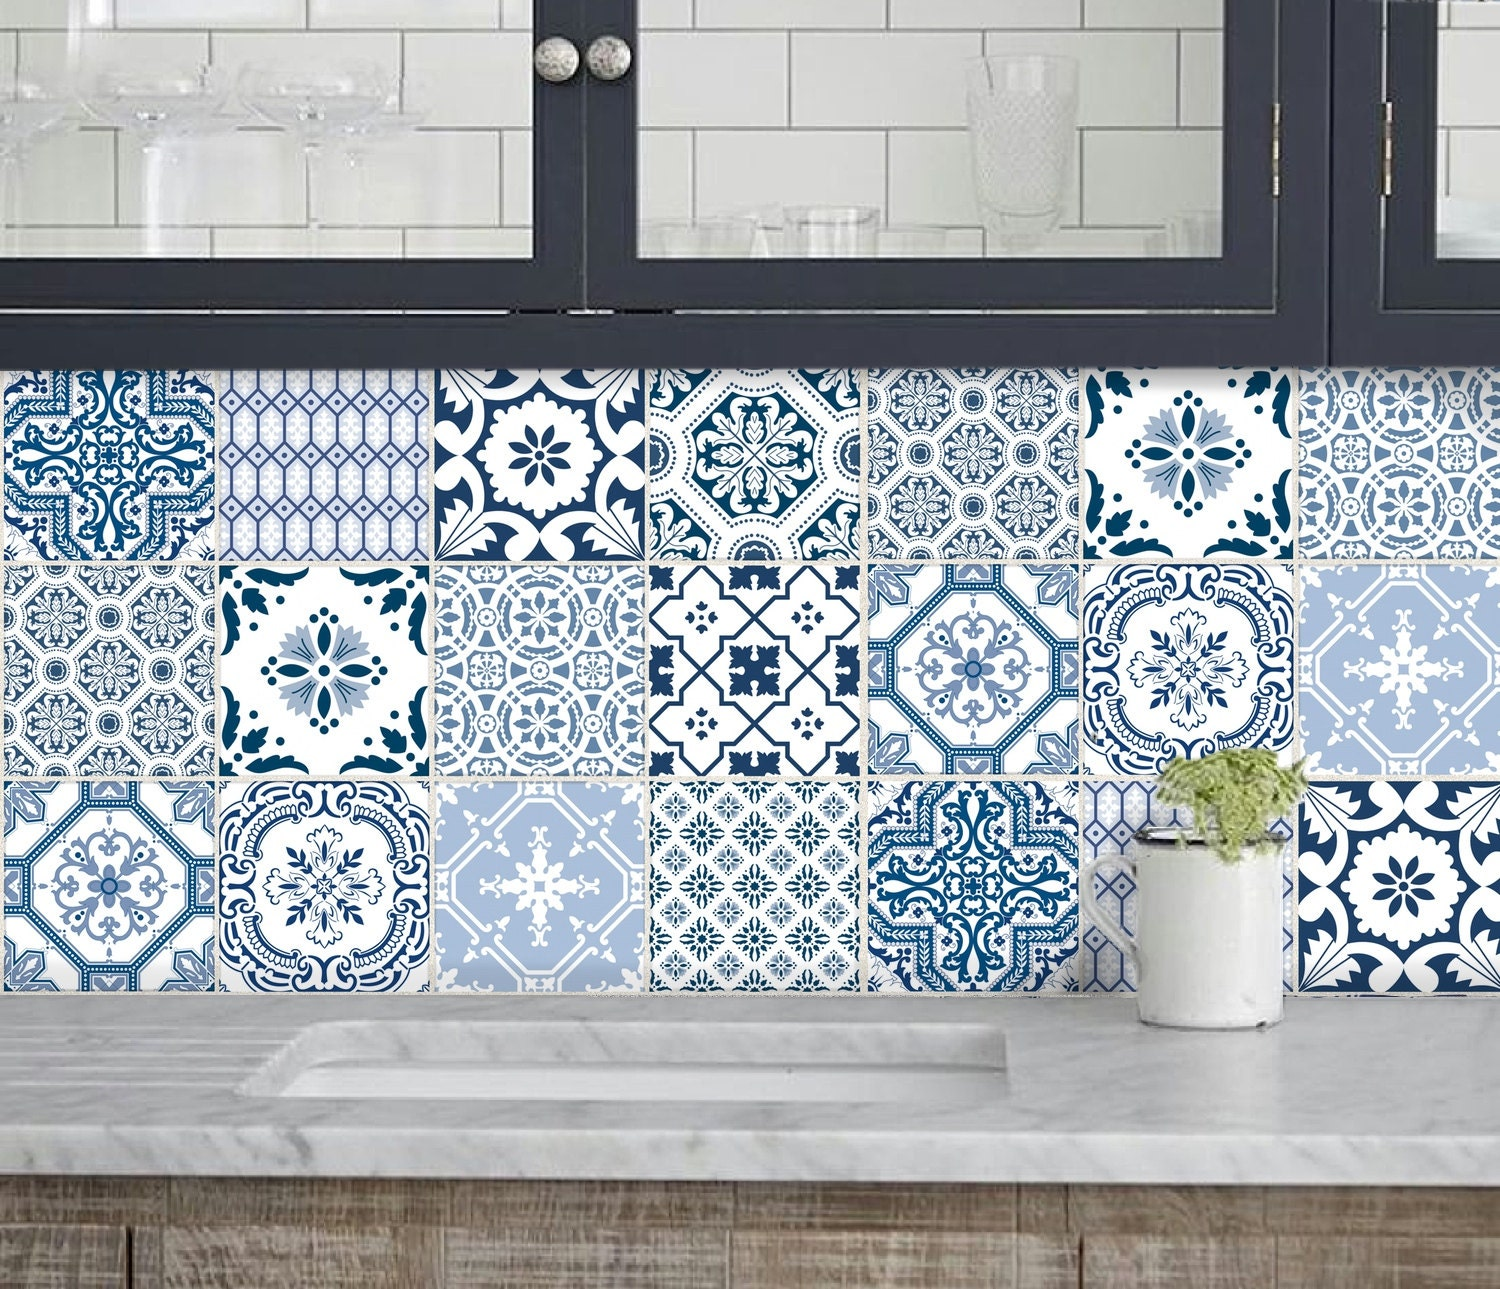 Https Www Etsy Com Listing 199519317 Kitchen Bathroom Tile Decals Vinyl